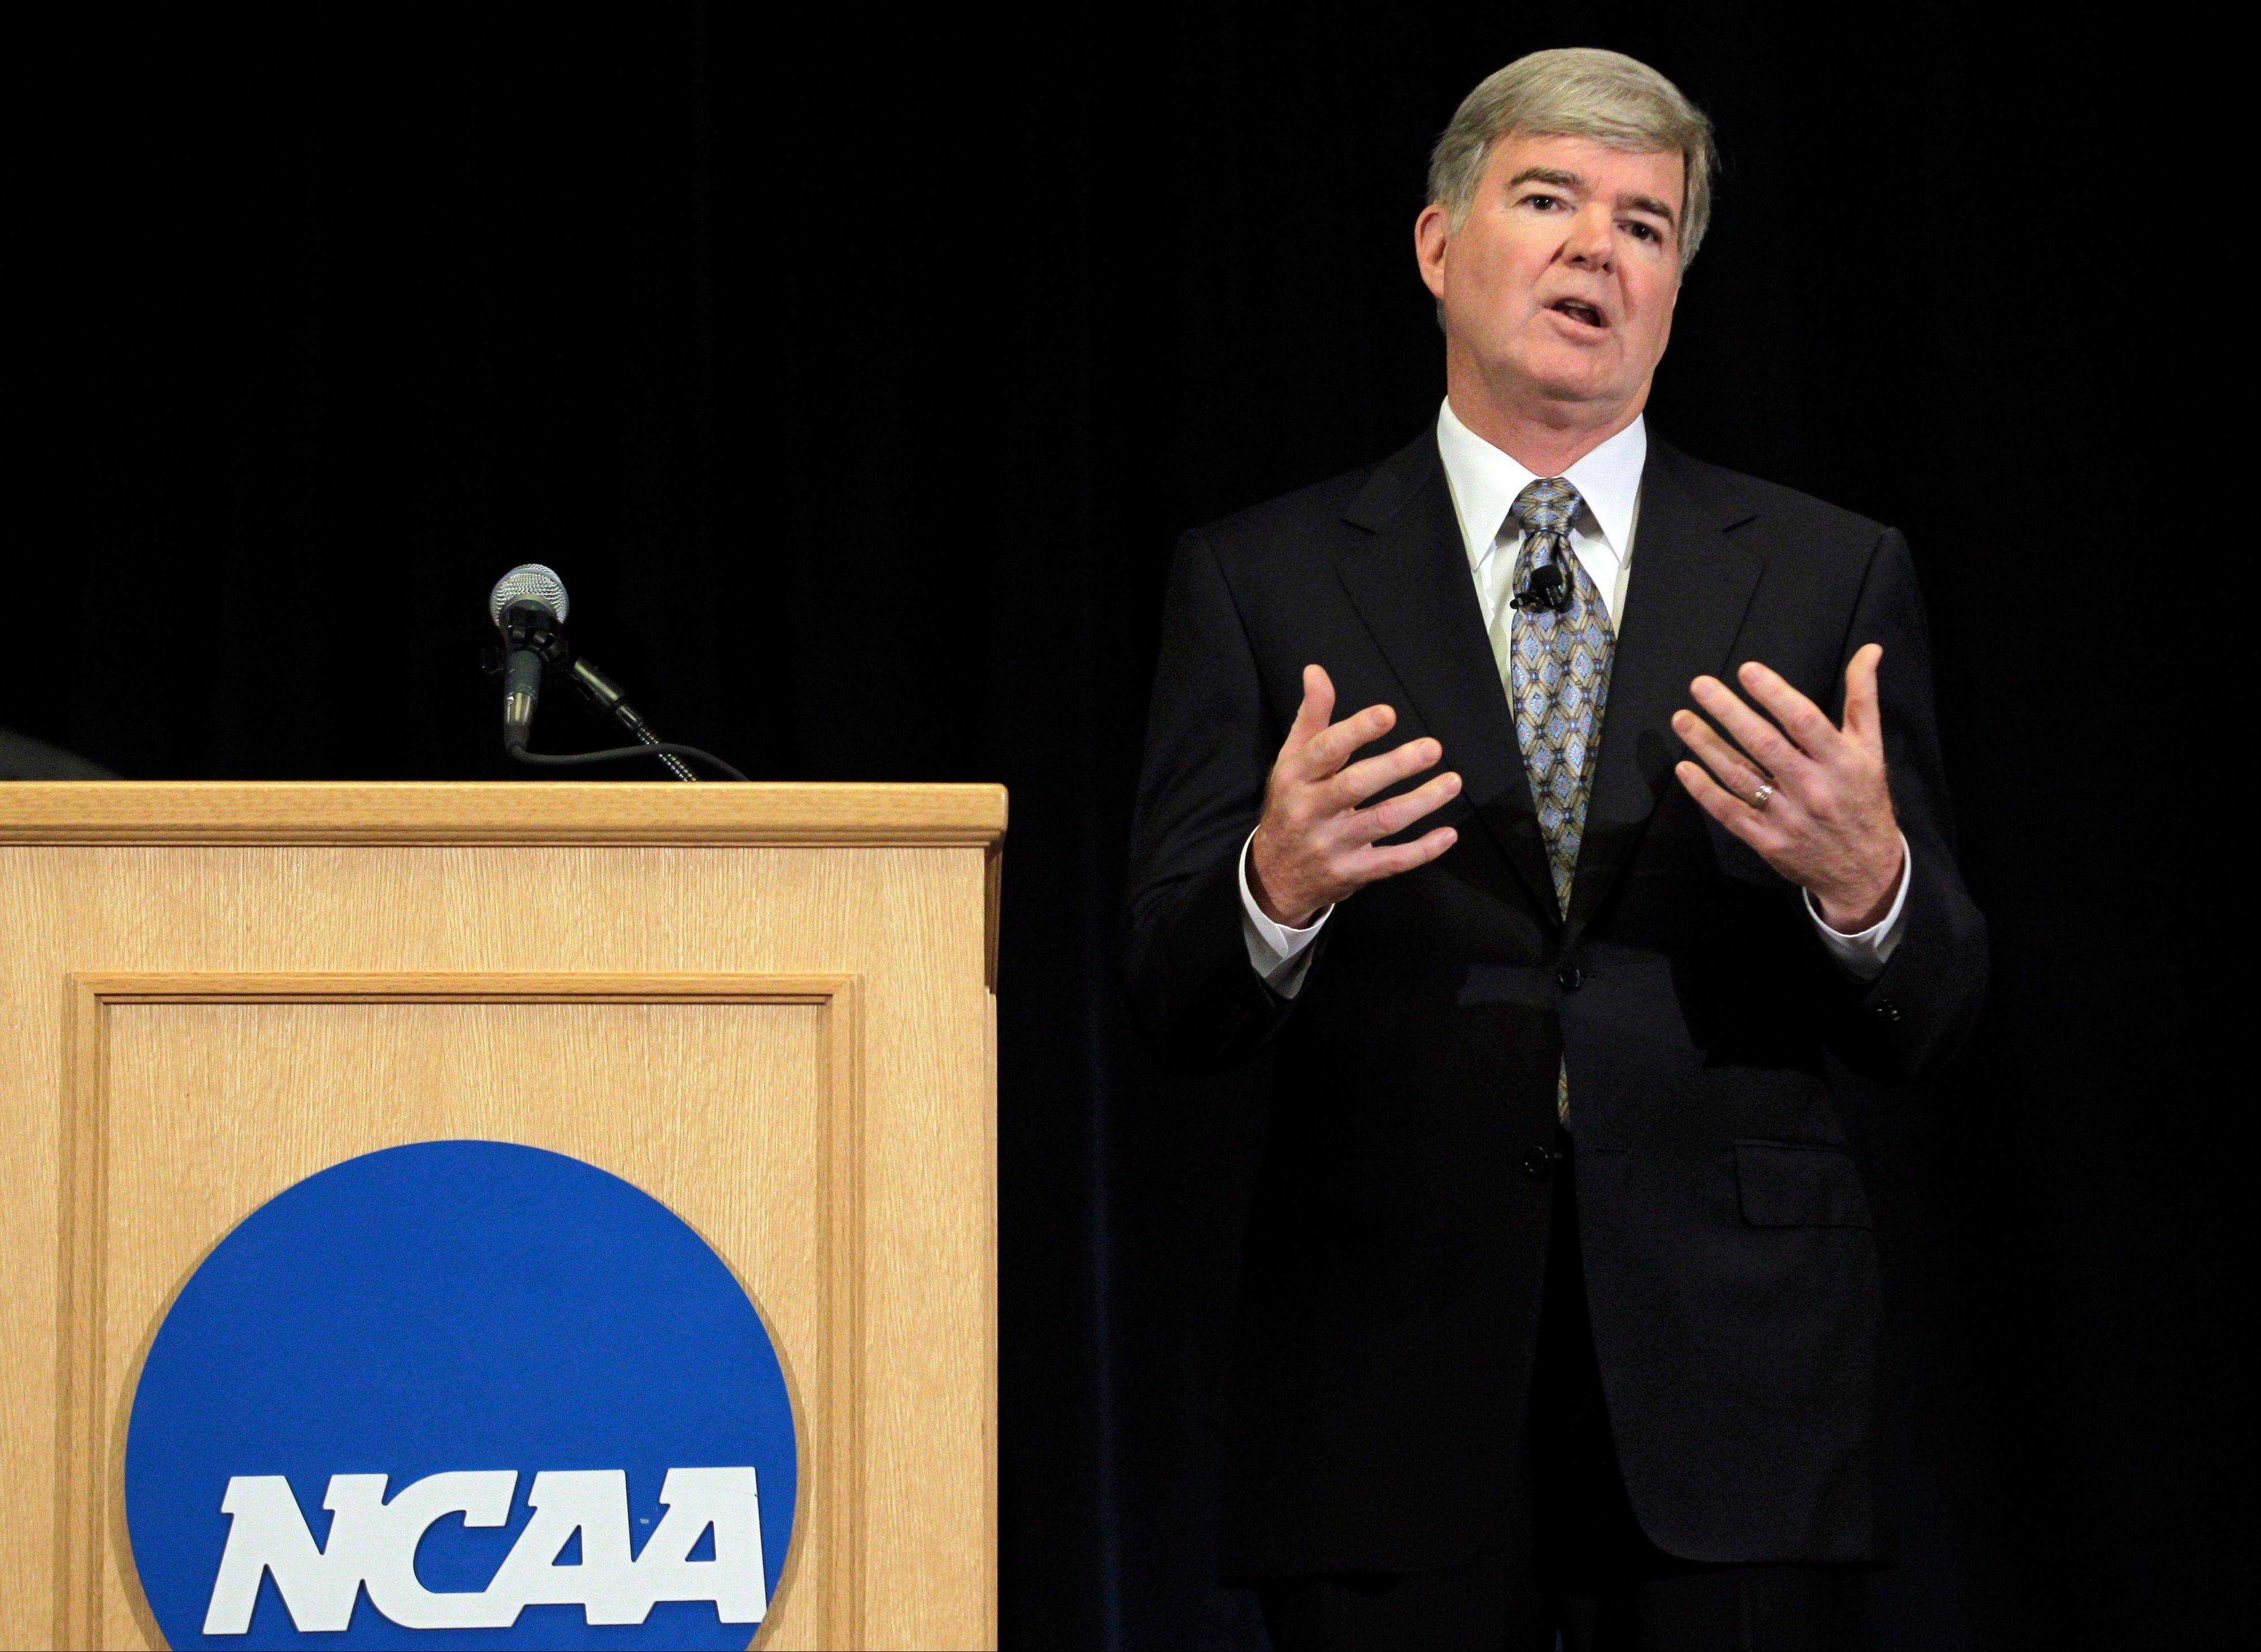 NCAA President Mark Emmert handed down an unprecedented series of penalties Monday morning to Penn State, including a $60 million fine and the loss of all coach Joe Paterno's victories from 1998-2011, in the wake of the Jerry Sandusky child sex abuse scandal.